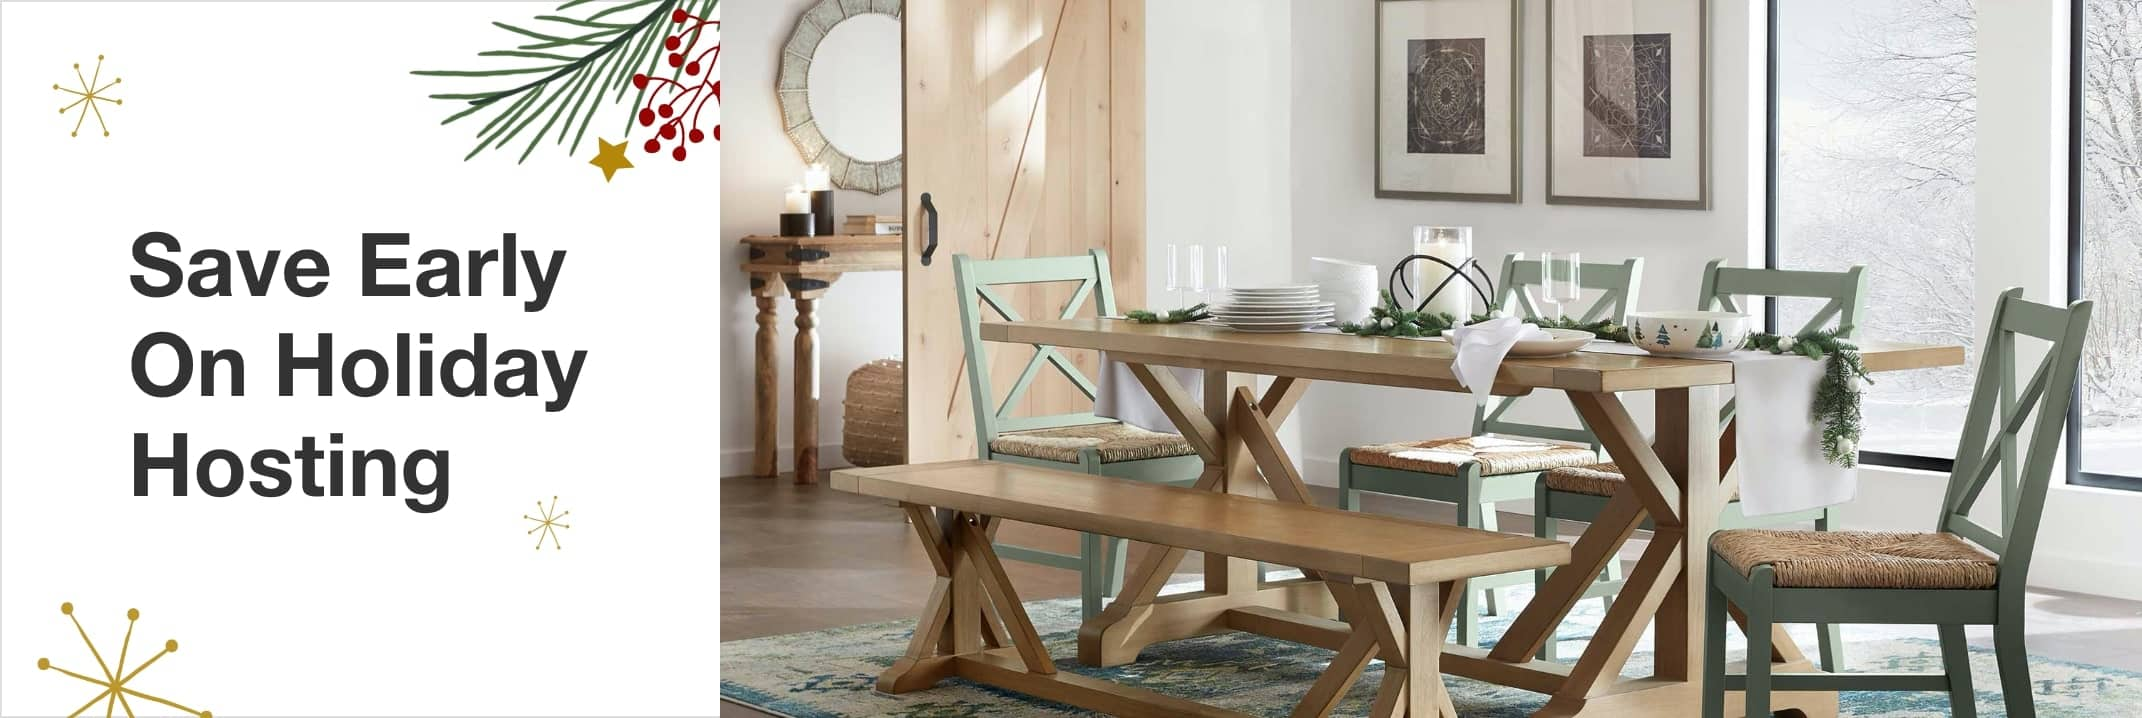 Save Early On Holiday Hosting Up to 25% Off Select Furniture, Tableware and Guest Room Essentials